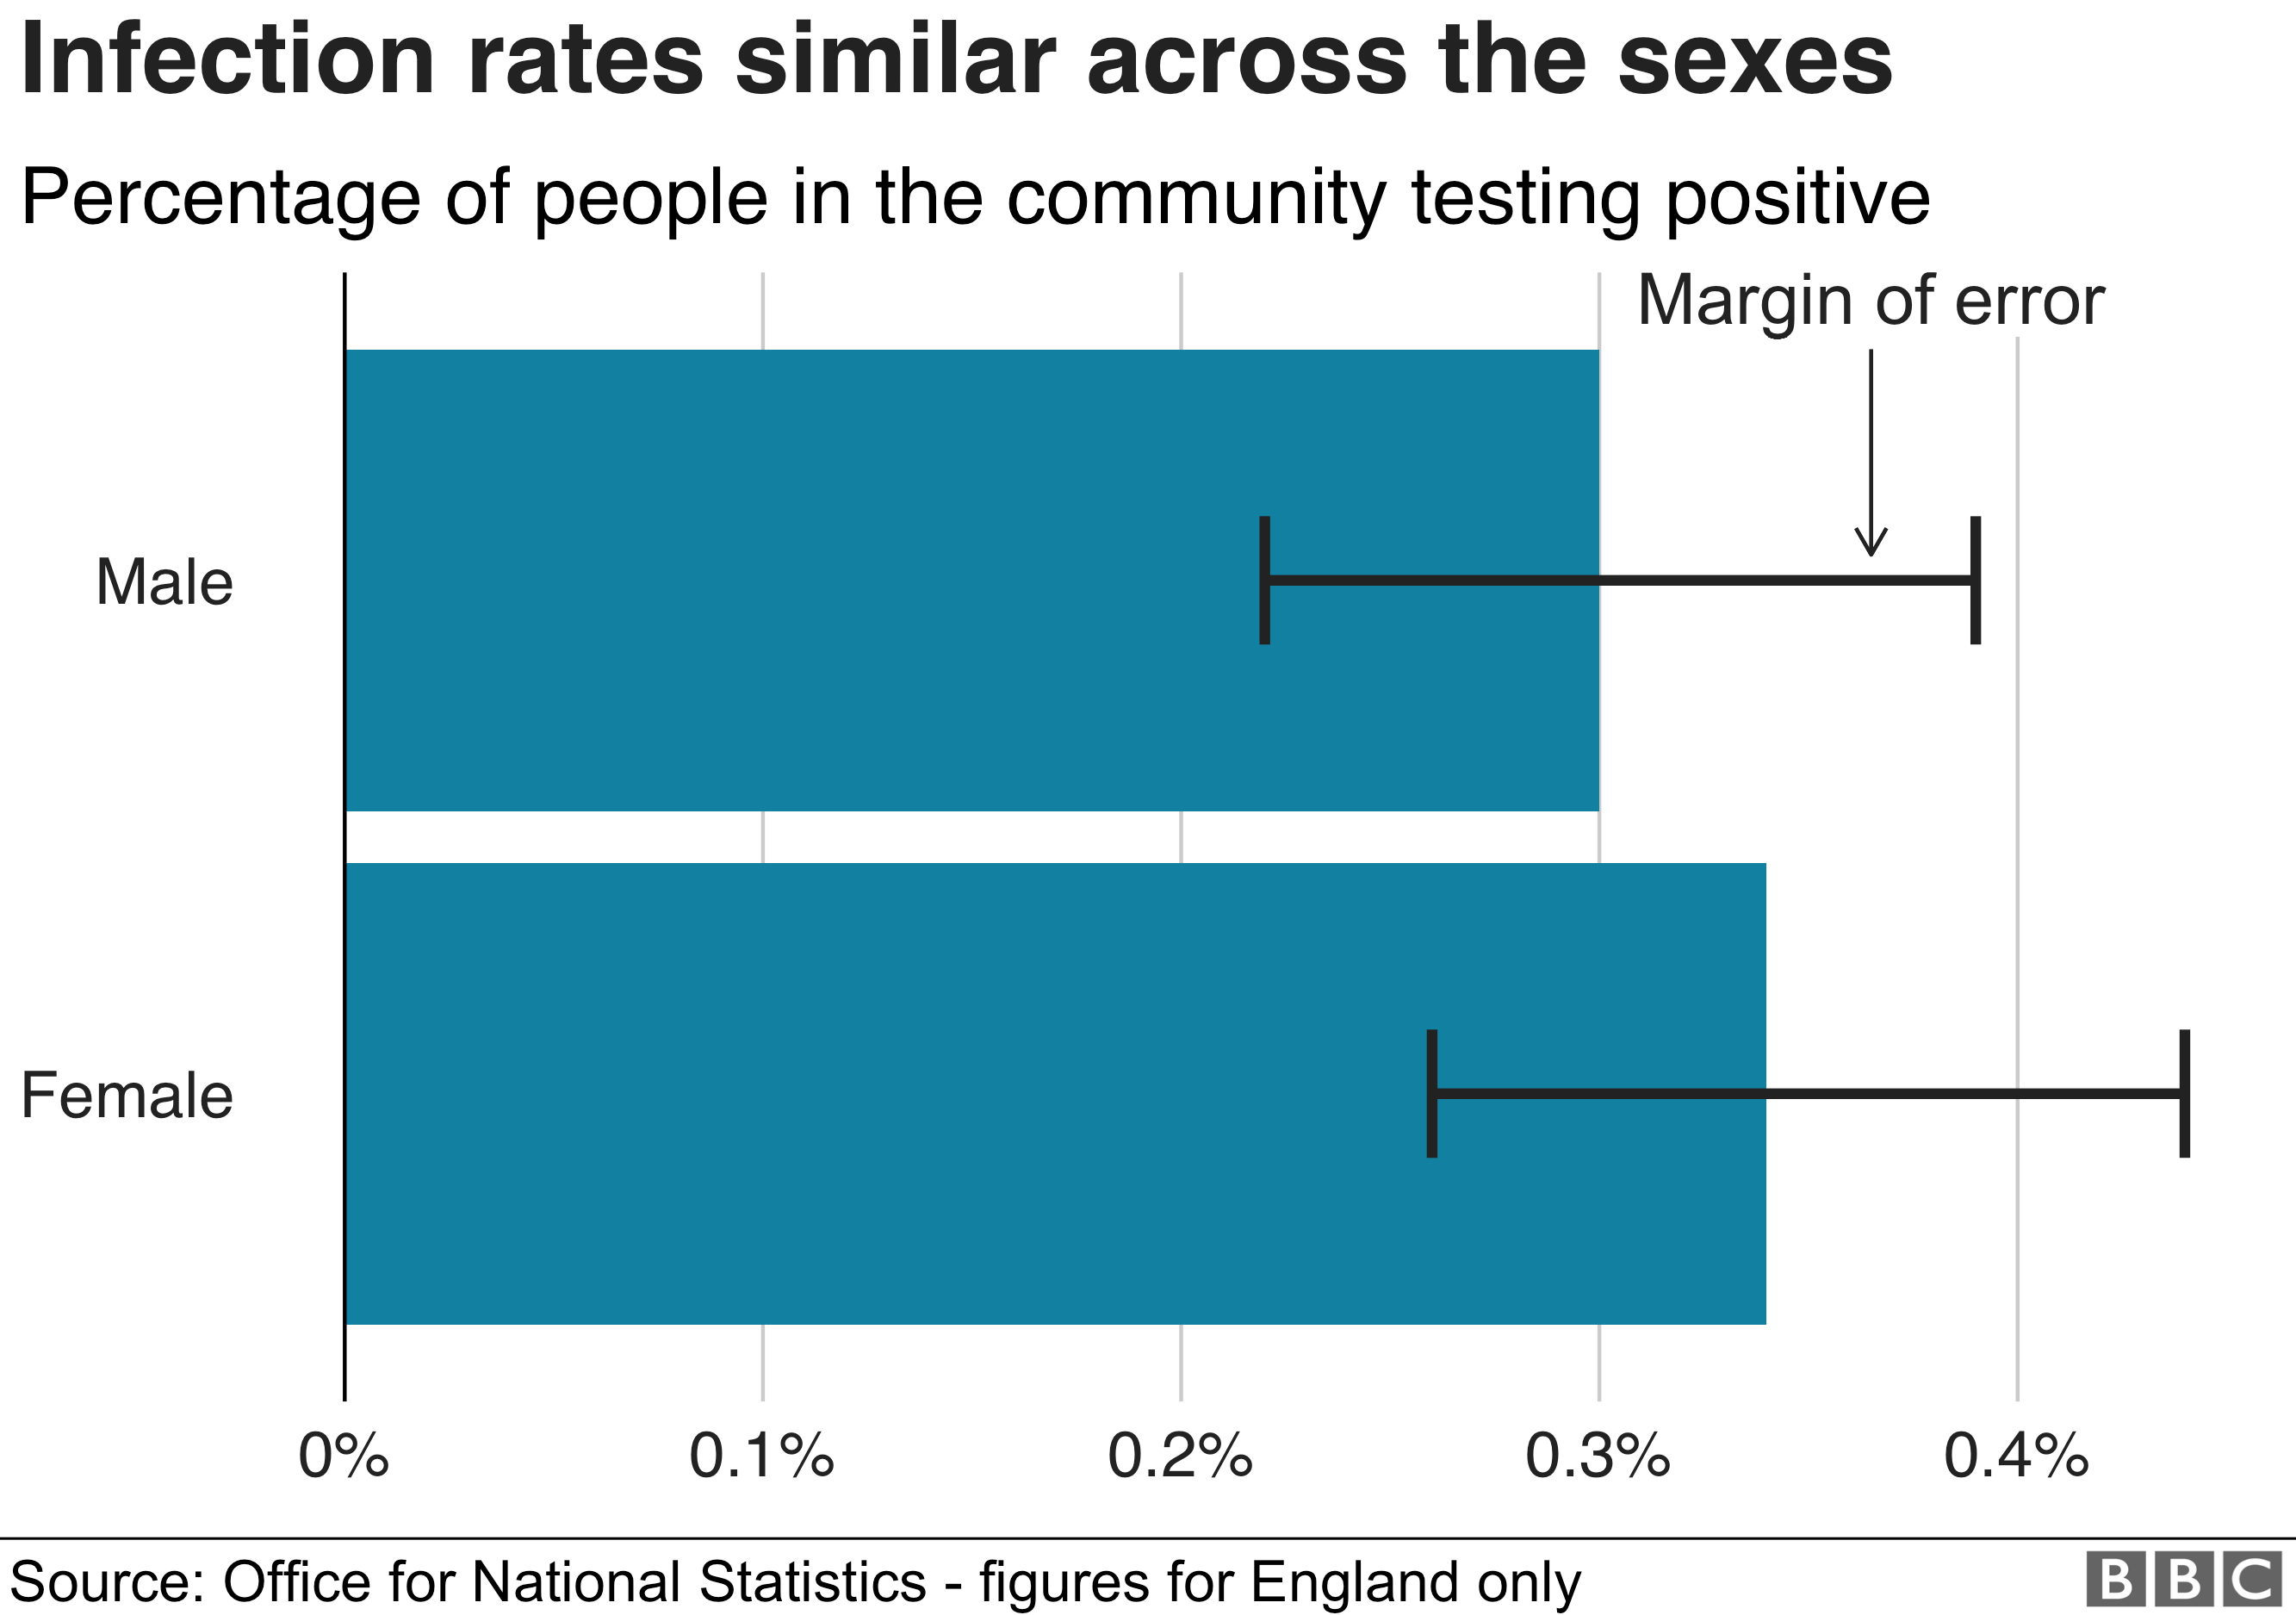 chart showing similar rates of infection between males and females